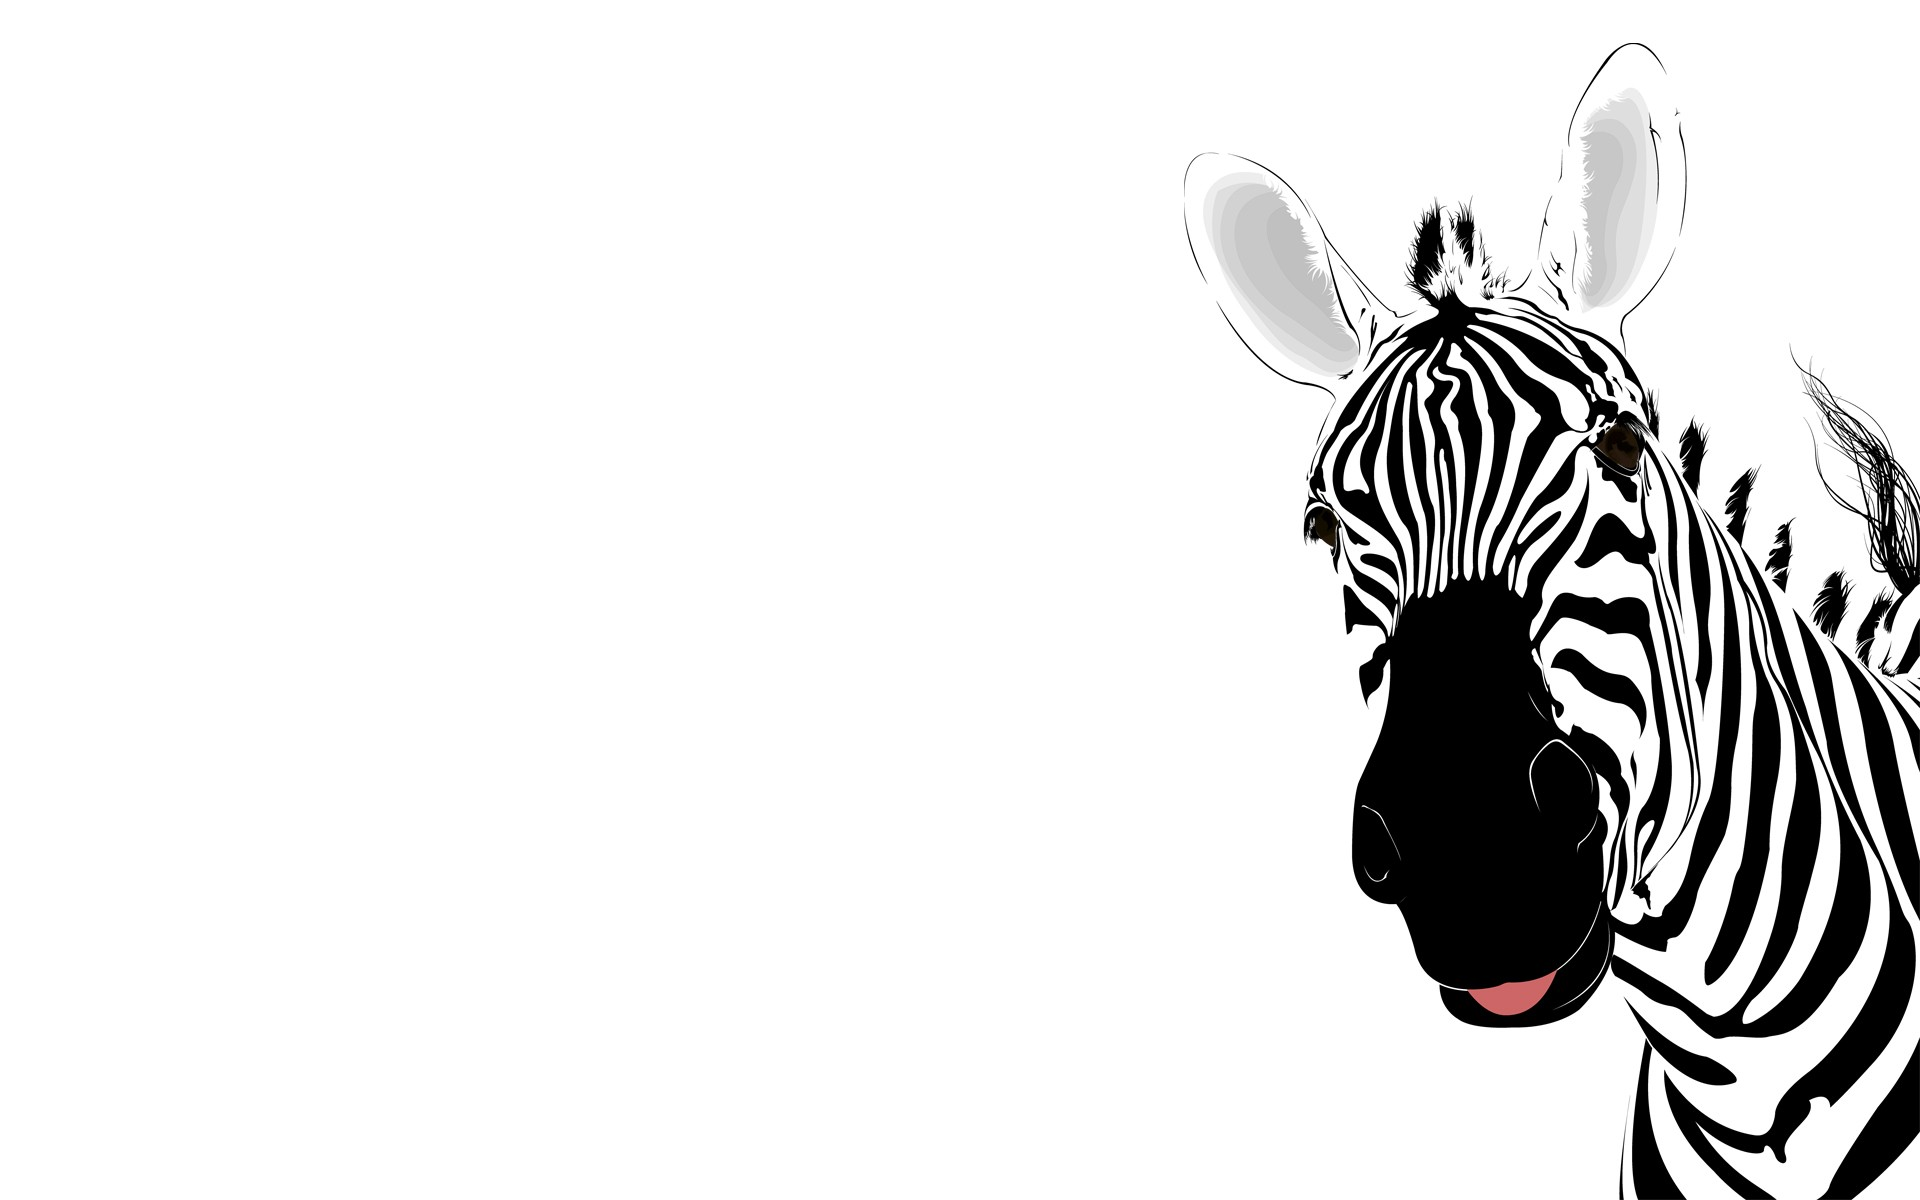 Zebra Animal Template Backgrounds Wallpapers Slide 1 1920x1200 px ...